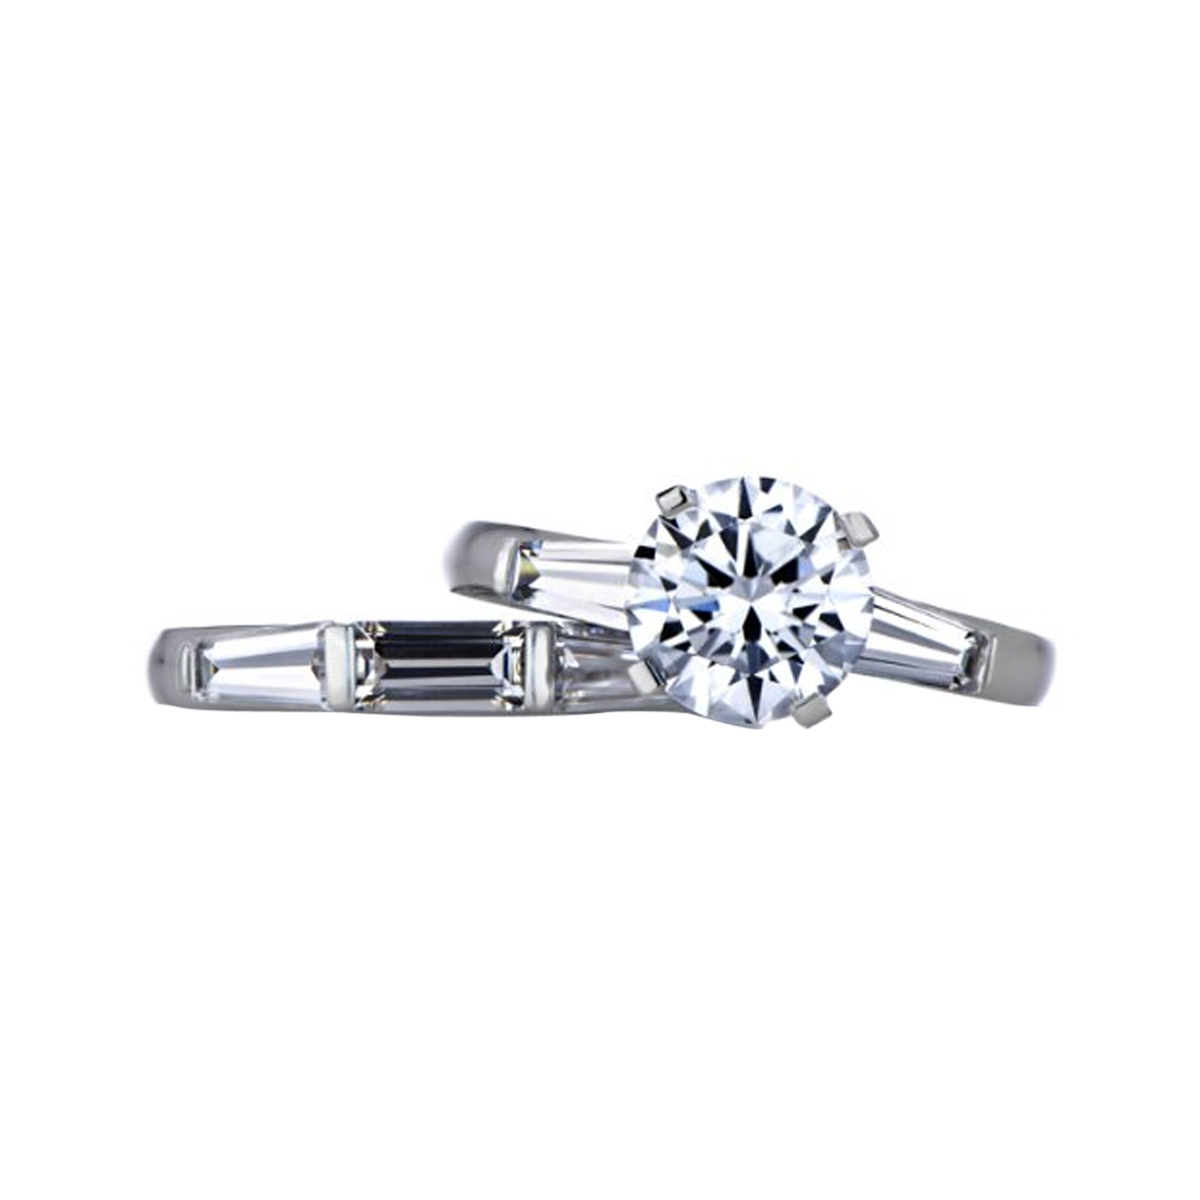 Hazels Round Baguette Cut CZ Wedding Ring Set